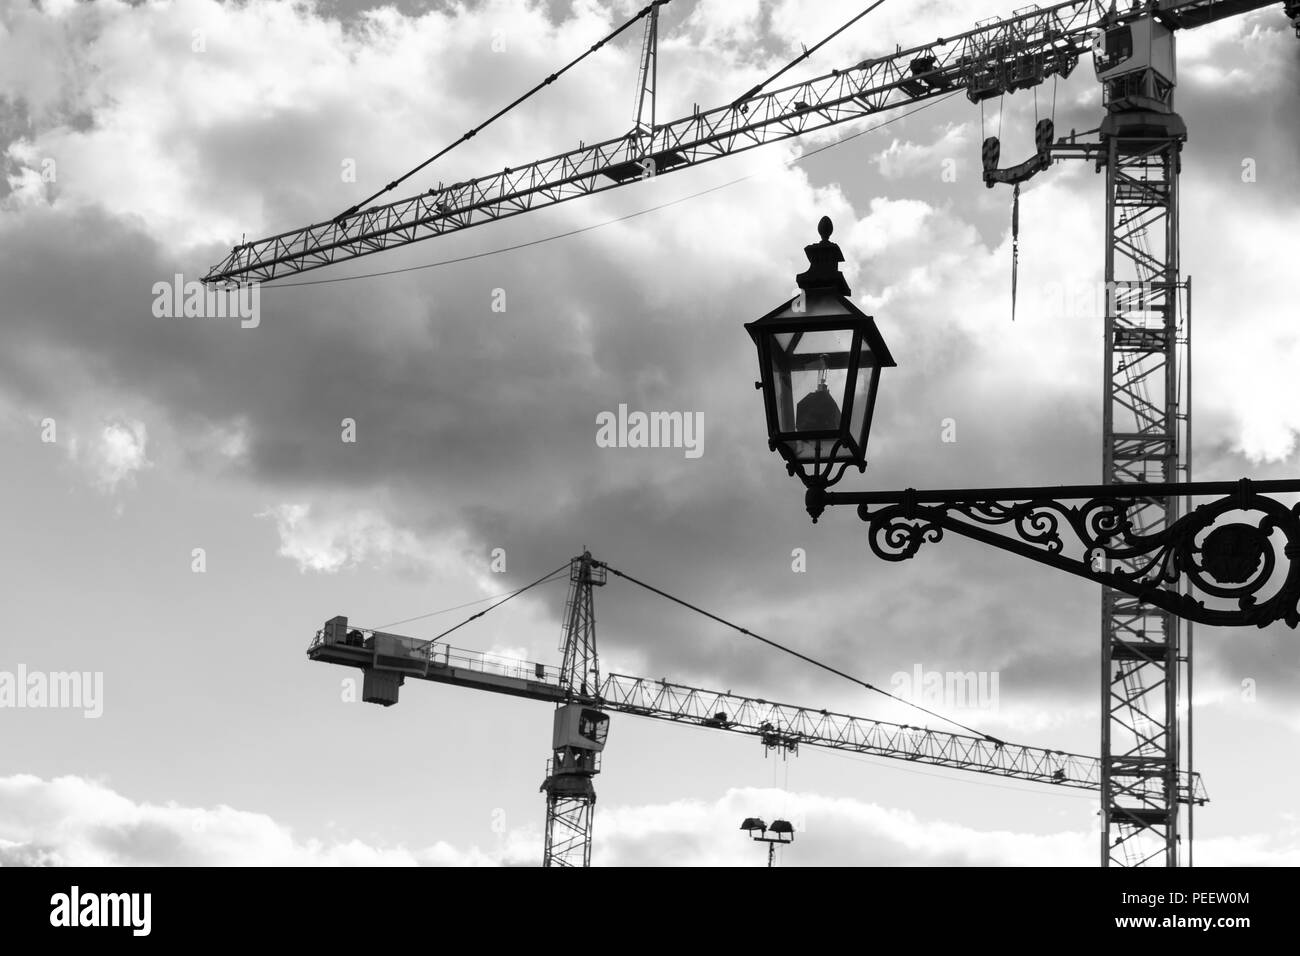 Tower cranes against the sky in the old town. BW - Stock Image